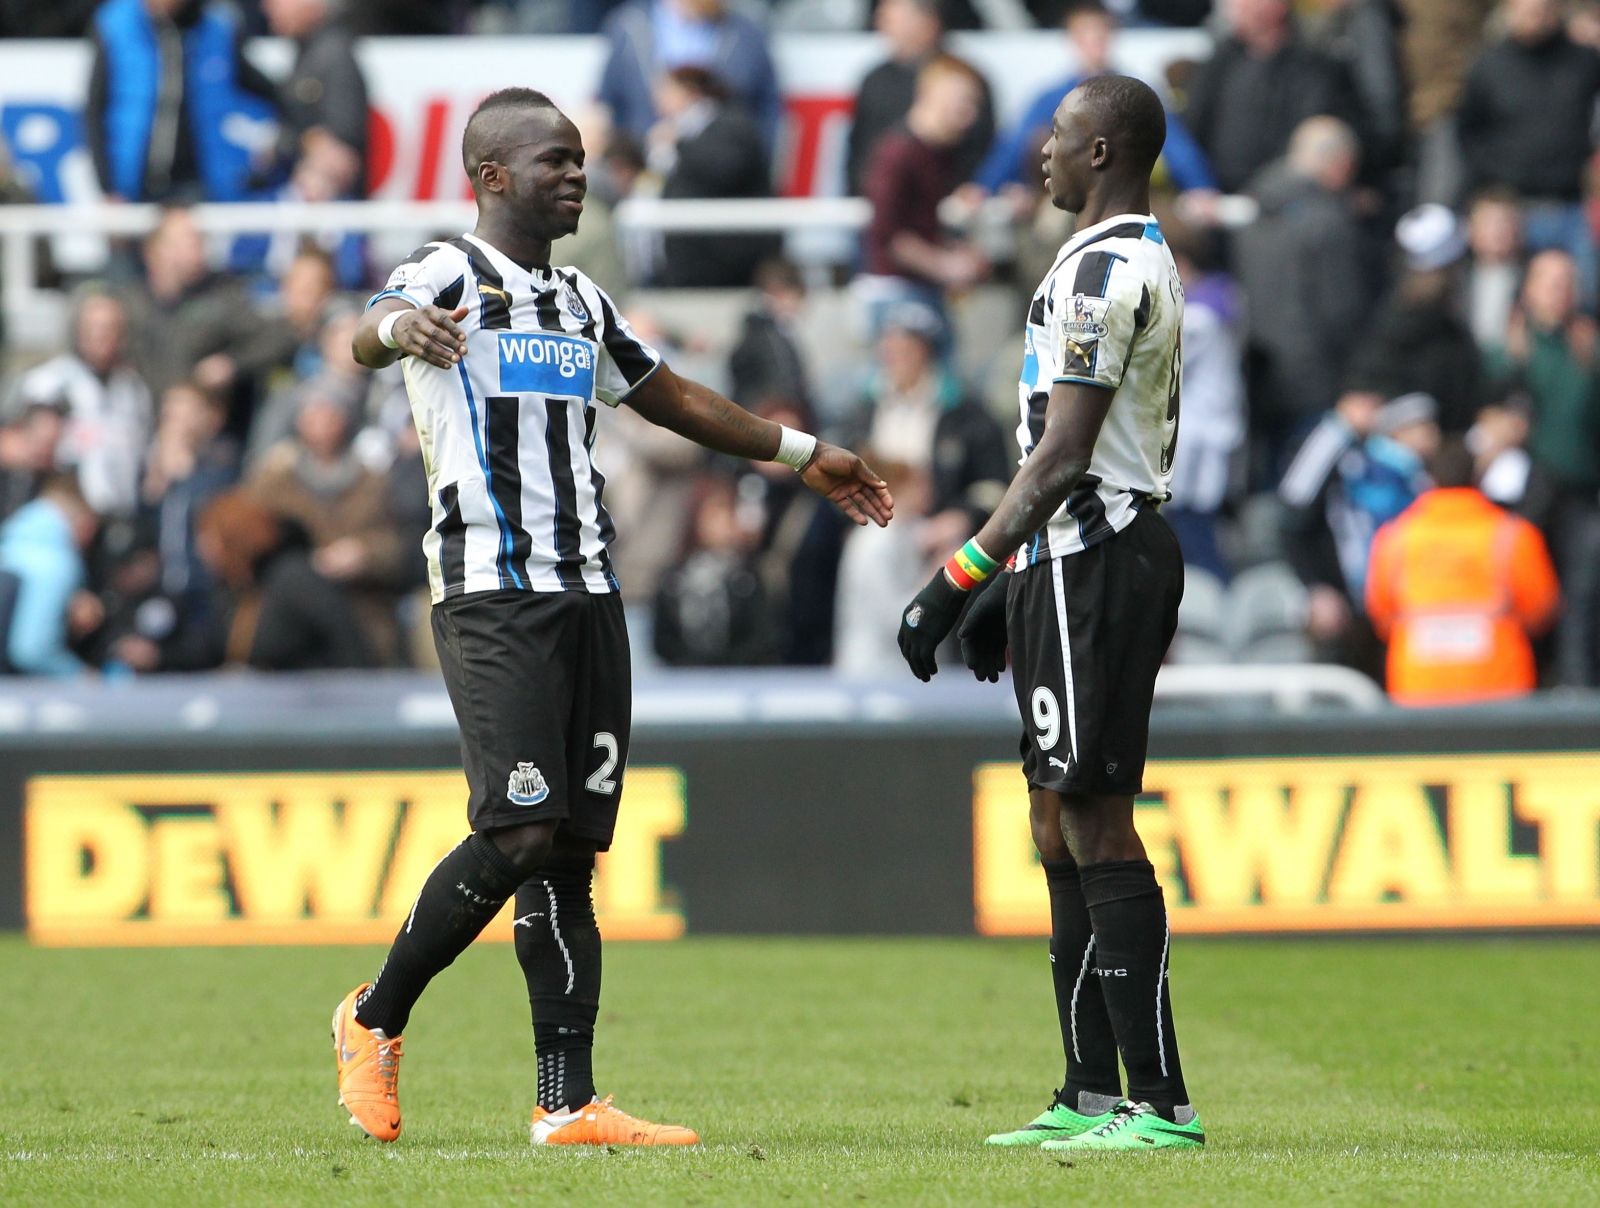 Papiss Cisse-Cheick Tiote